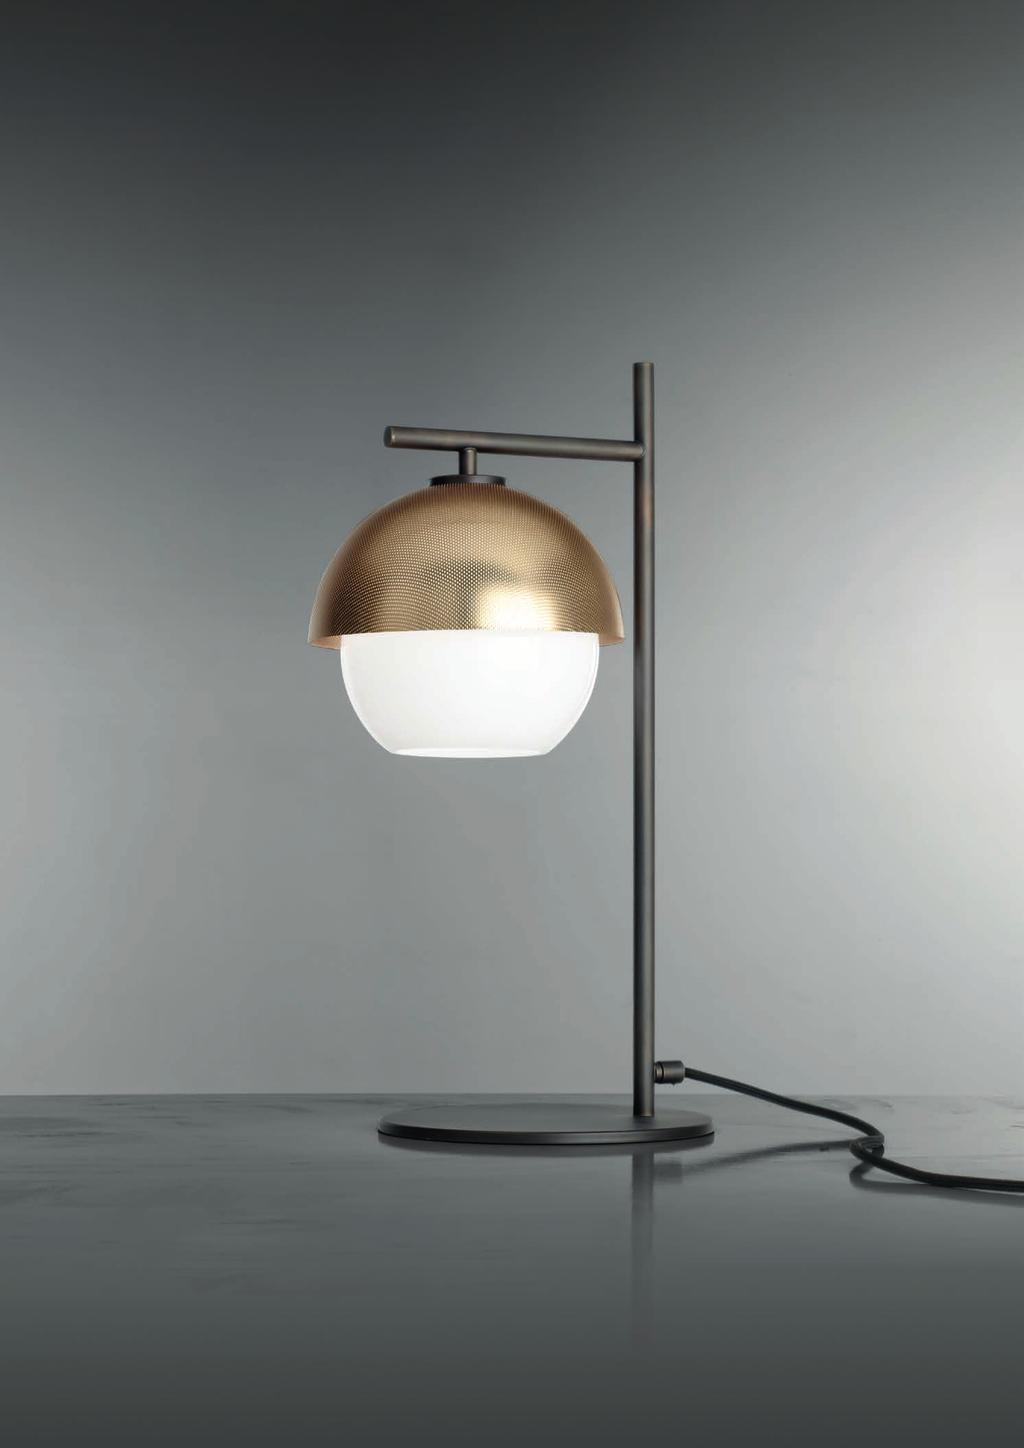 URBAN TABLE 50cm-19 5 34cm-13 4 23cm-9 Table lamp with diffuse light and white, tobacco or smoke Murano blown glass diffuser.